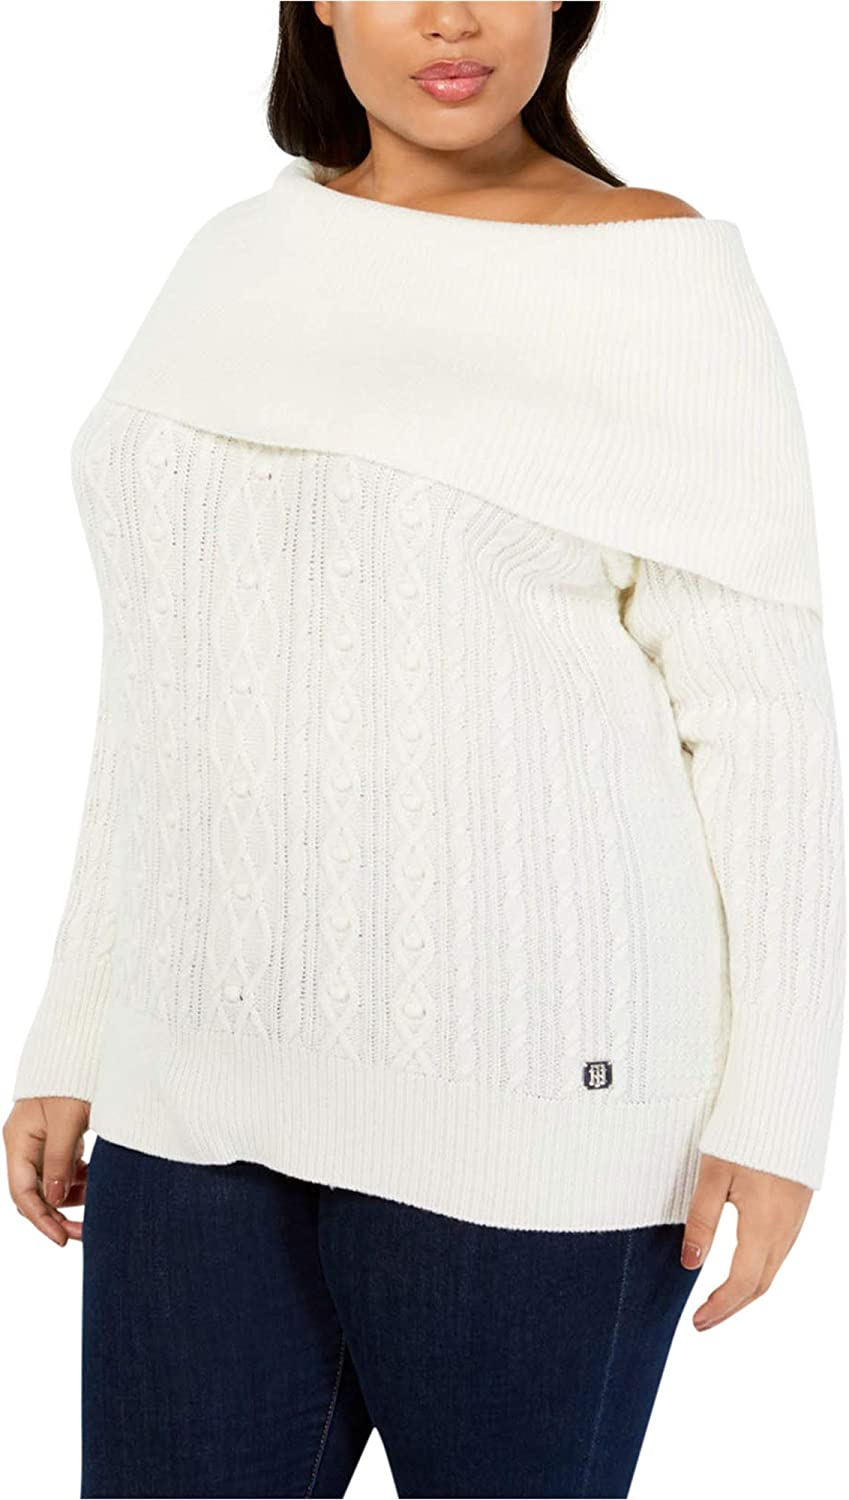 Tommy Hilfiger Womens Cable Knit Pullover Sweater